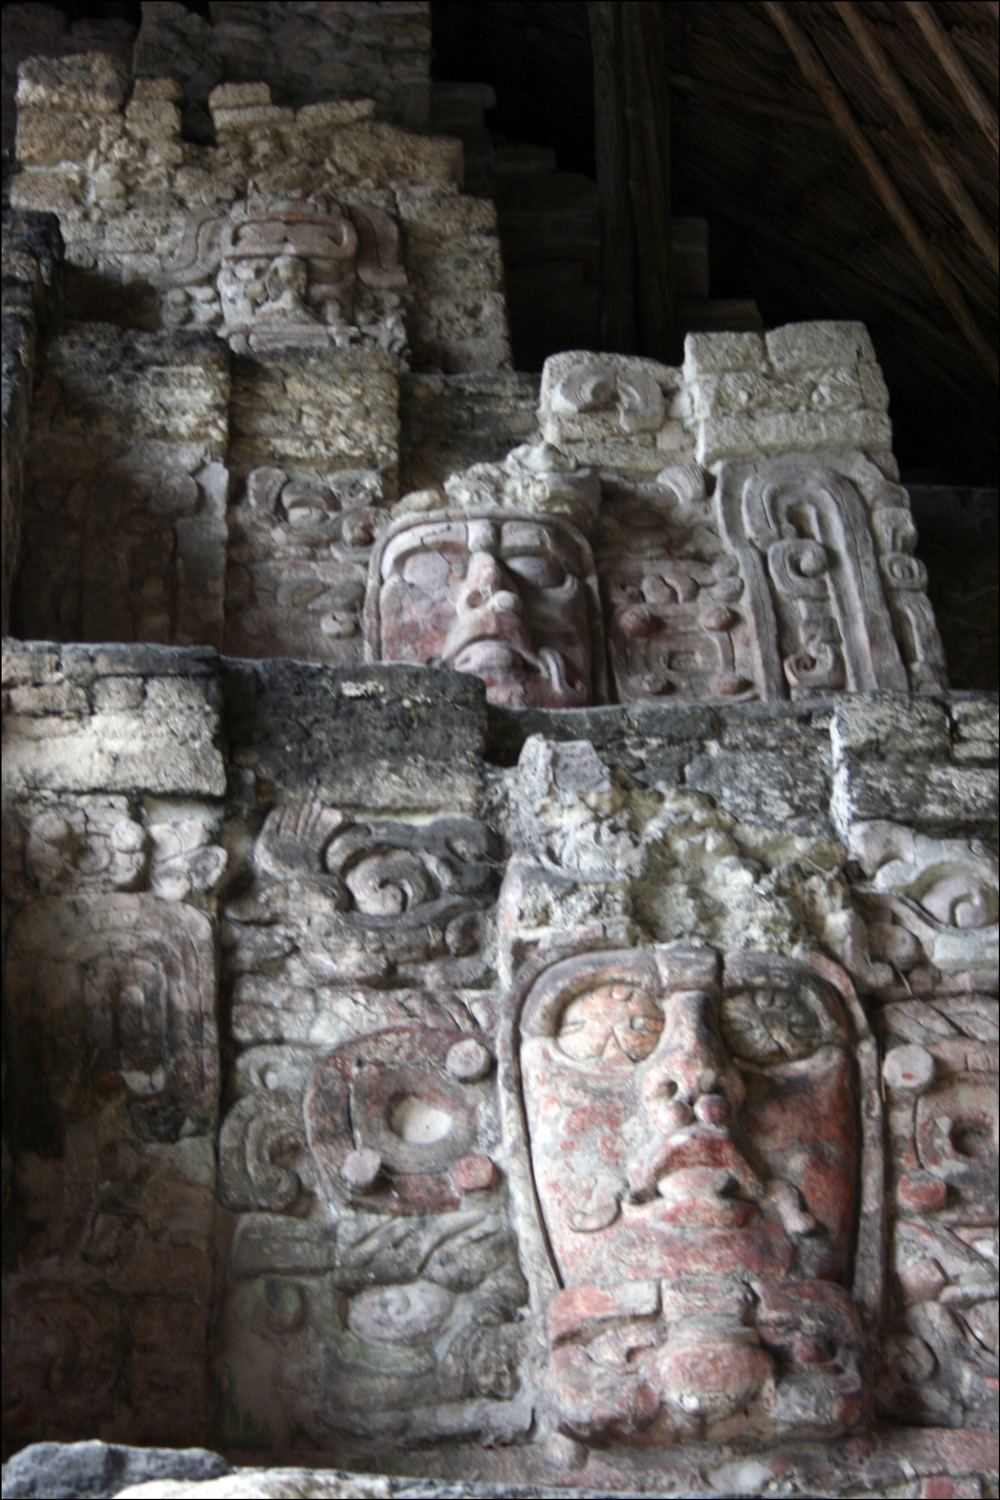 Right Side of the Temple of the Masks in Kohunlich